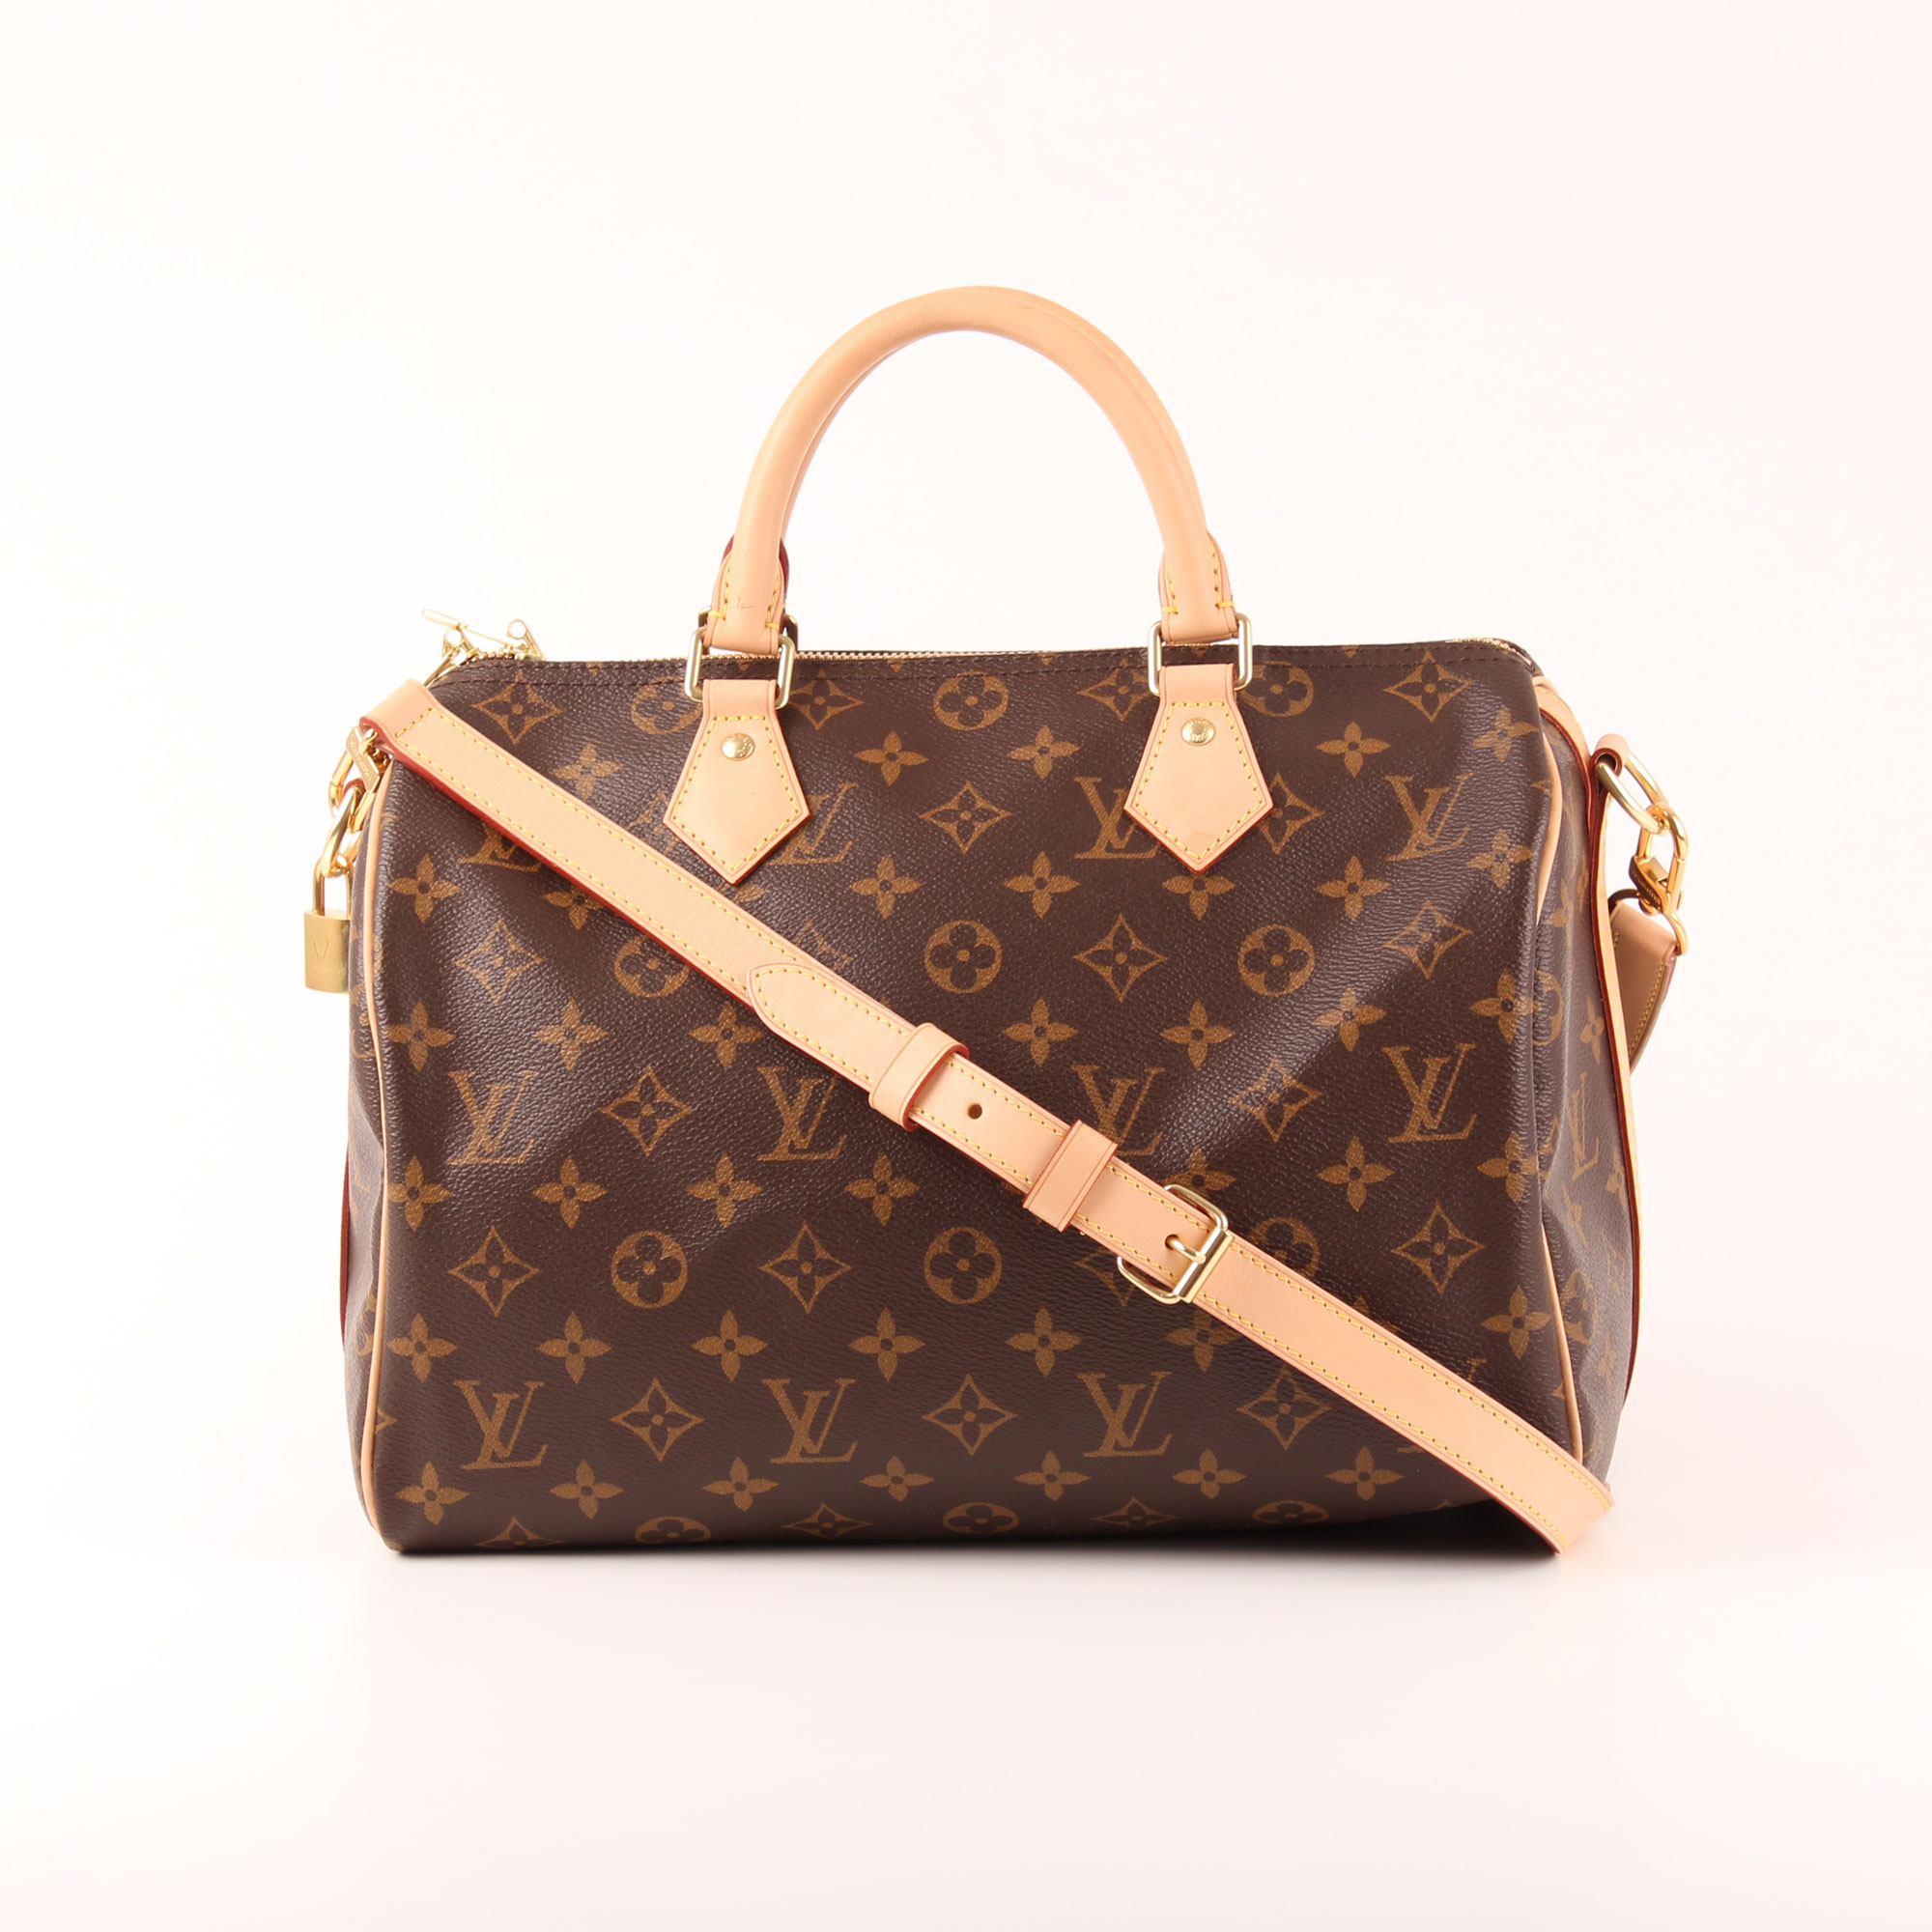 a6c978f3961b Image of louis vuitton bag speedy 30 monogram with strap band natural  leather